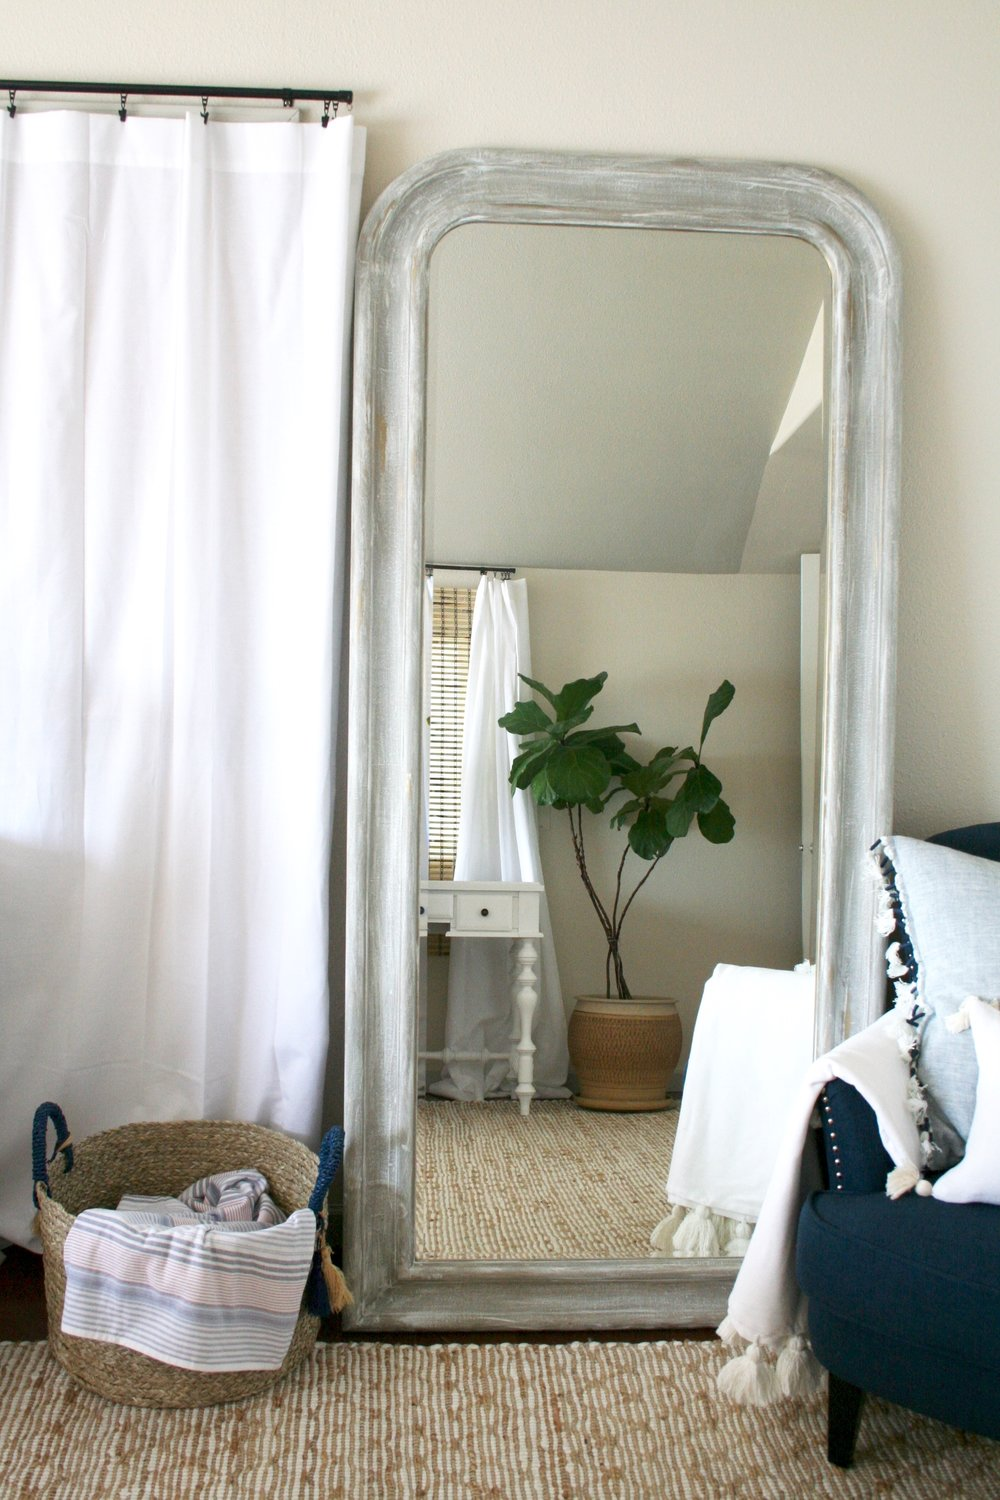 DIY IKEA Mirror Makeover by Anneke McConnell